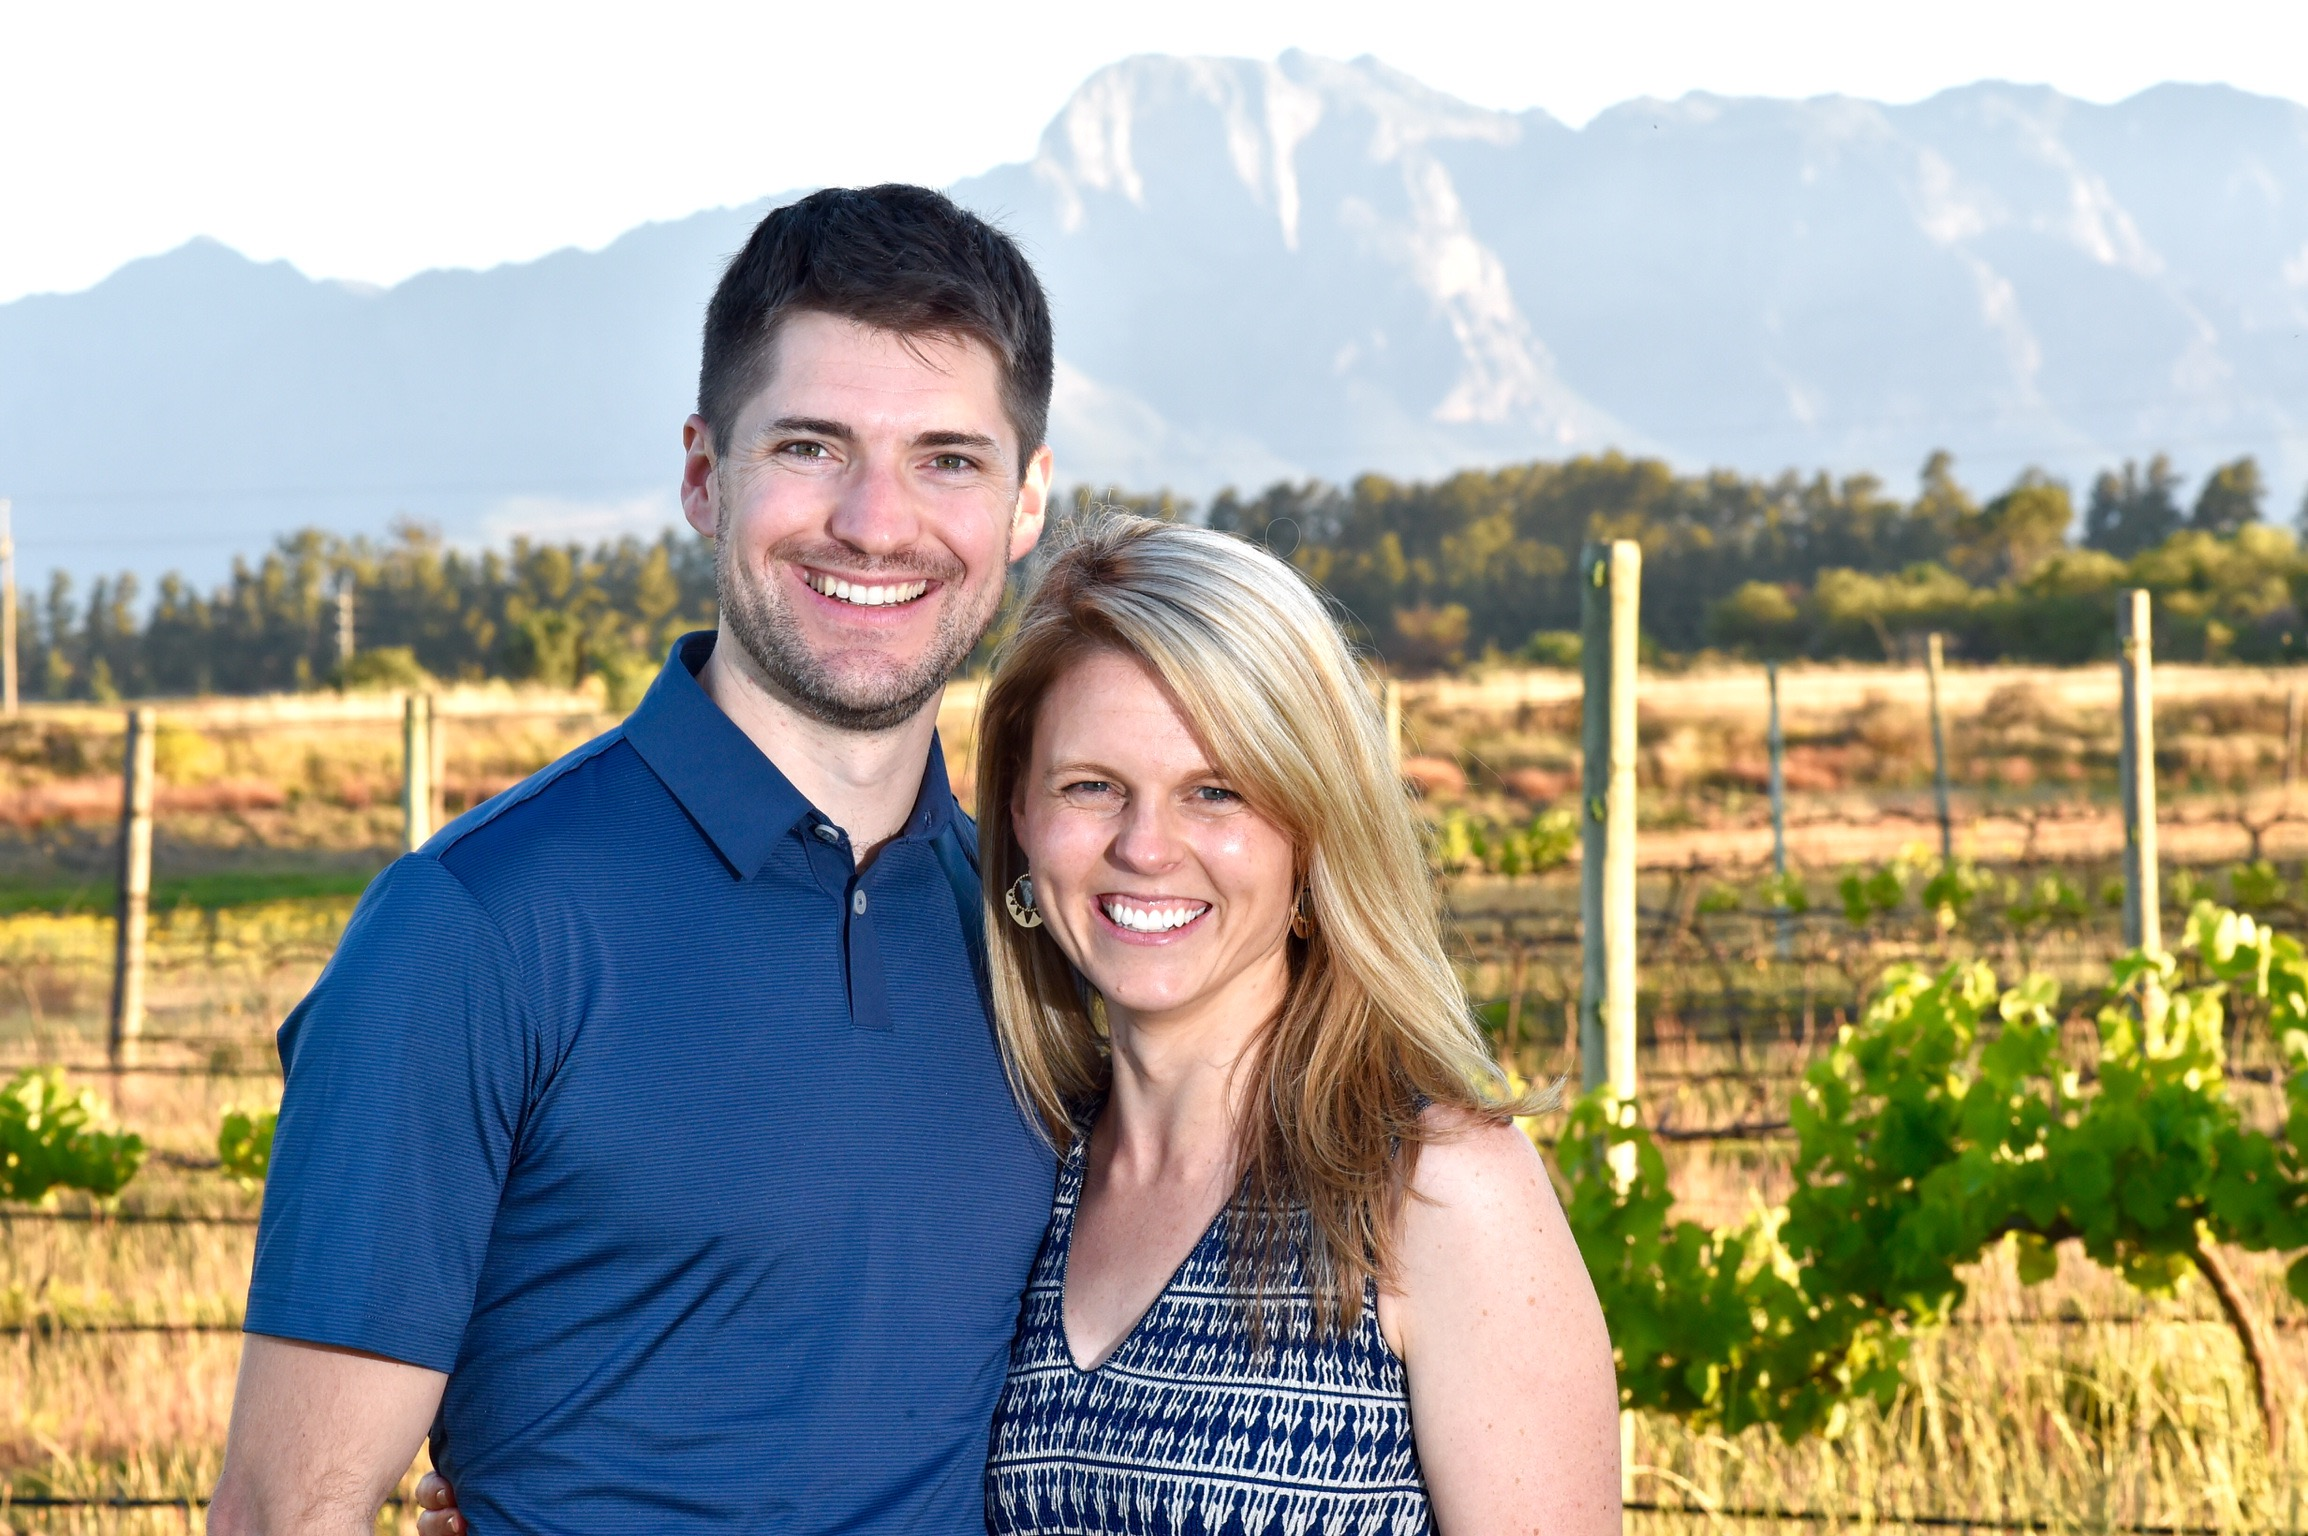 Dr. Nathan Cashion and his fiancé, Dr. Patricia Fogarty